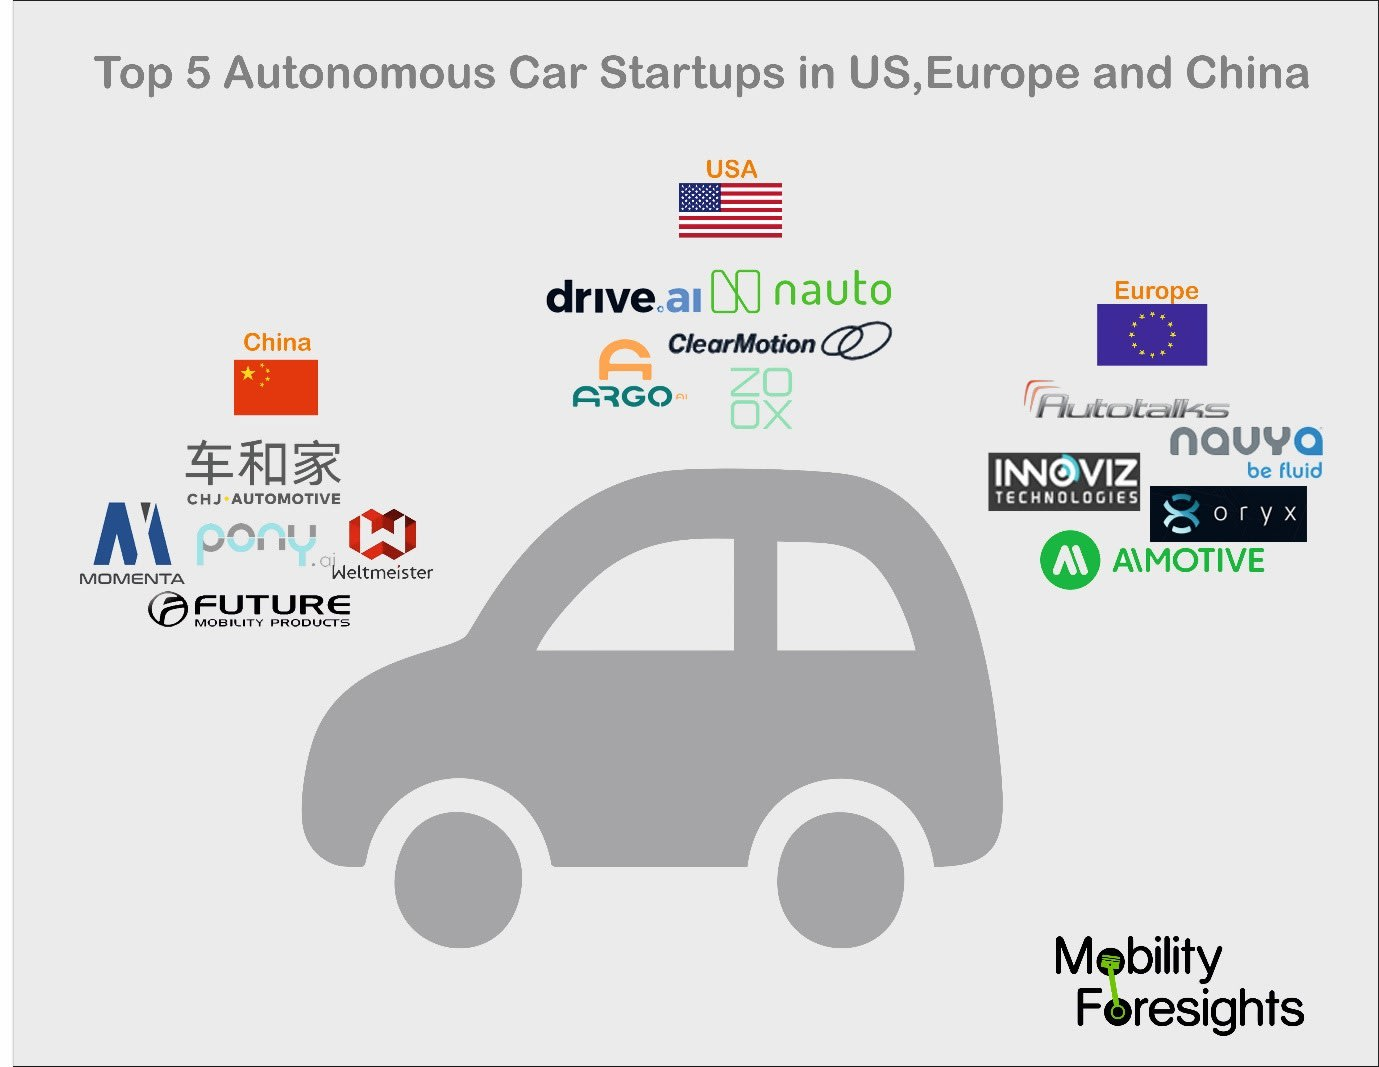 All about Top 5 Self-driving Car Start ups in US, Europe and China